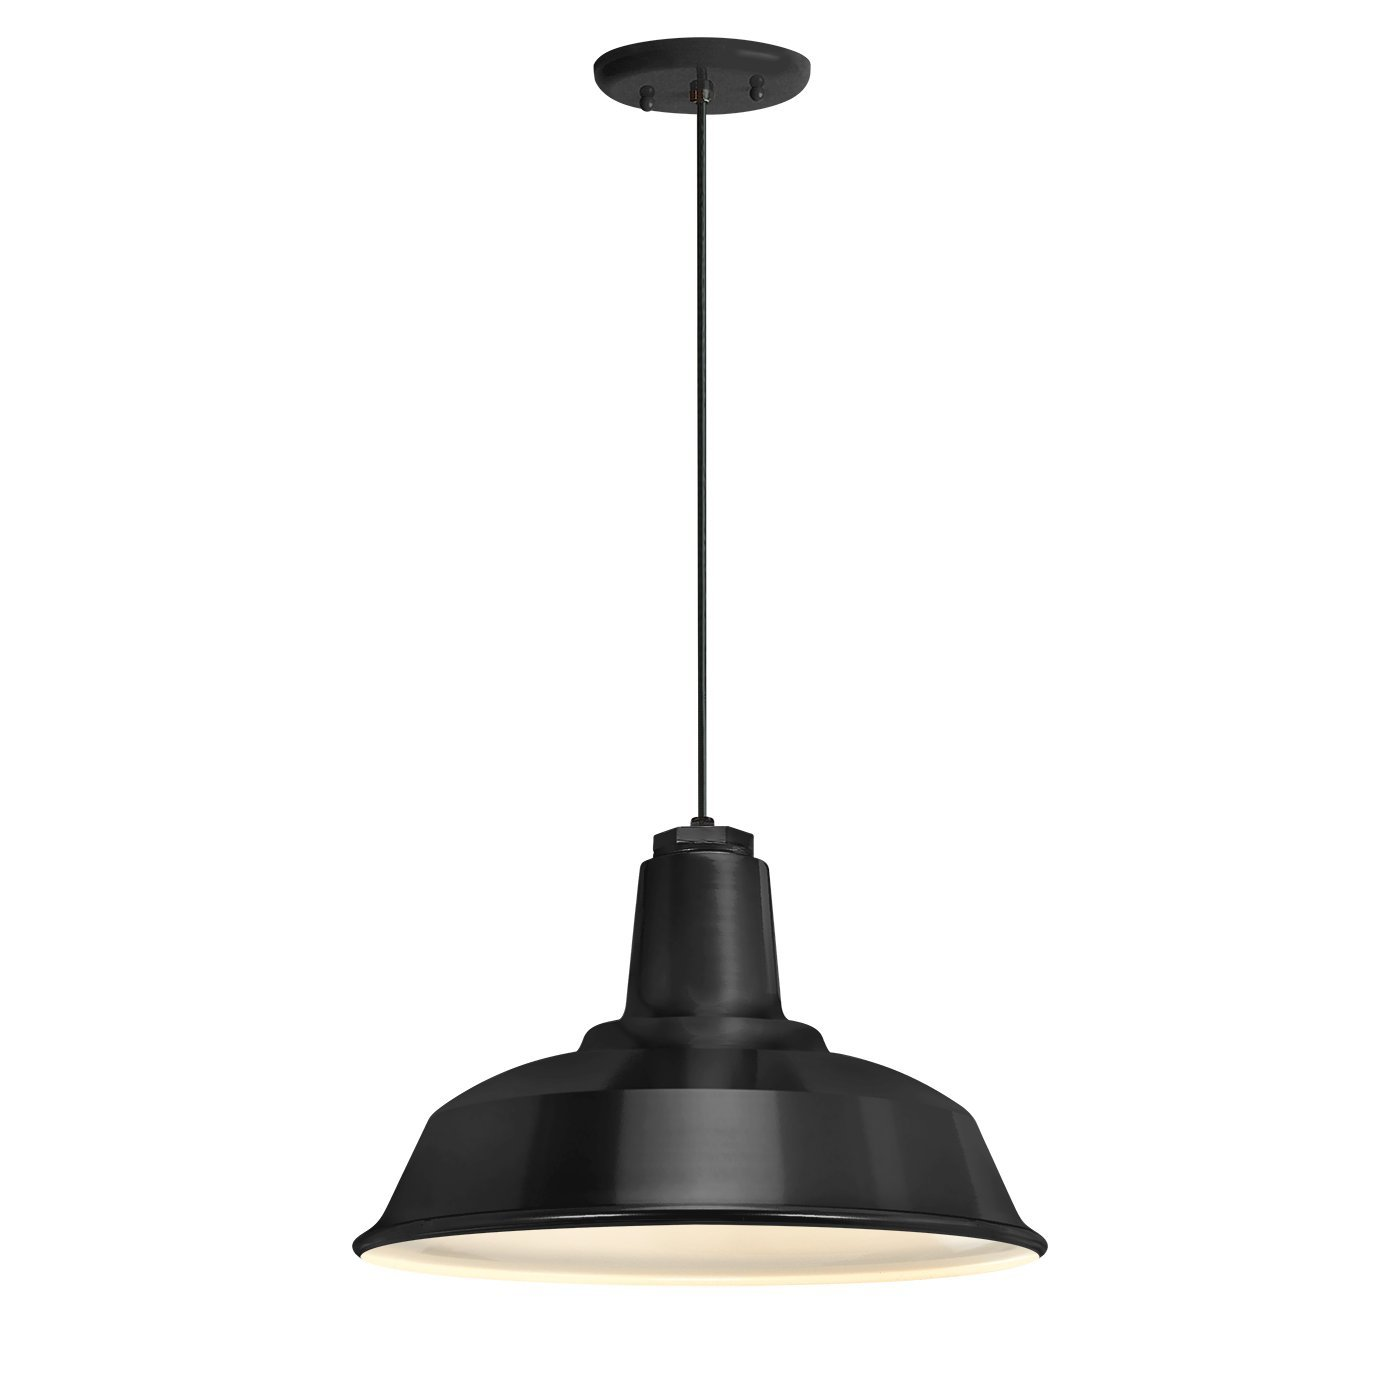 Troy RLM 5DRH14MBK-BC Heavy Duty Outdoor Pendant, Black by Troy RLM